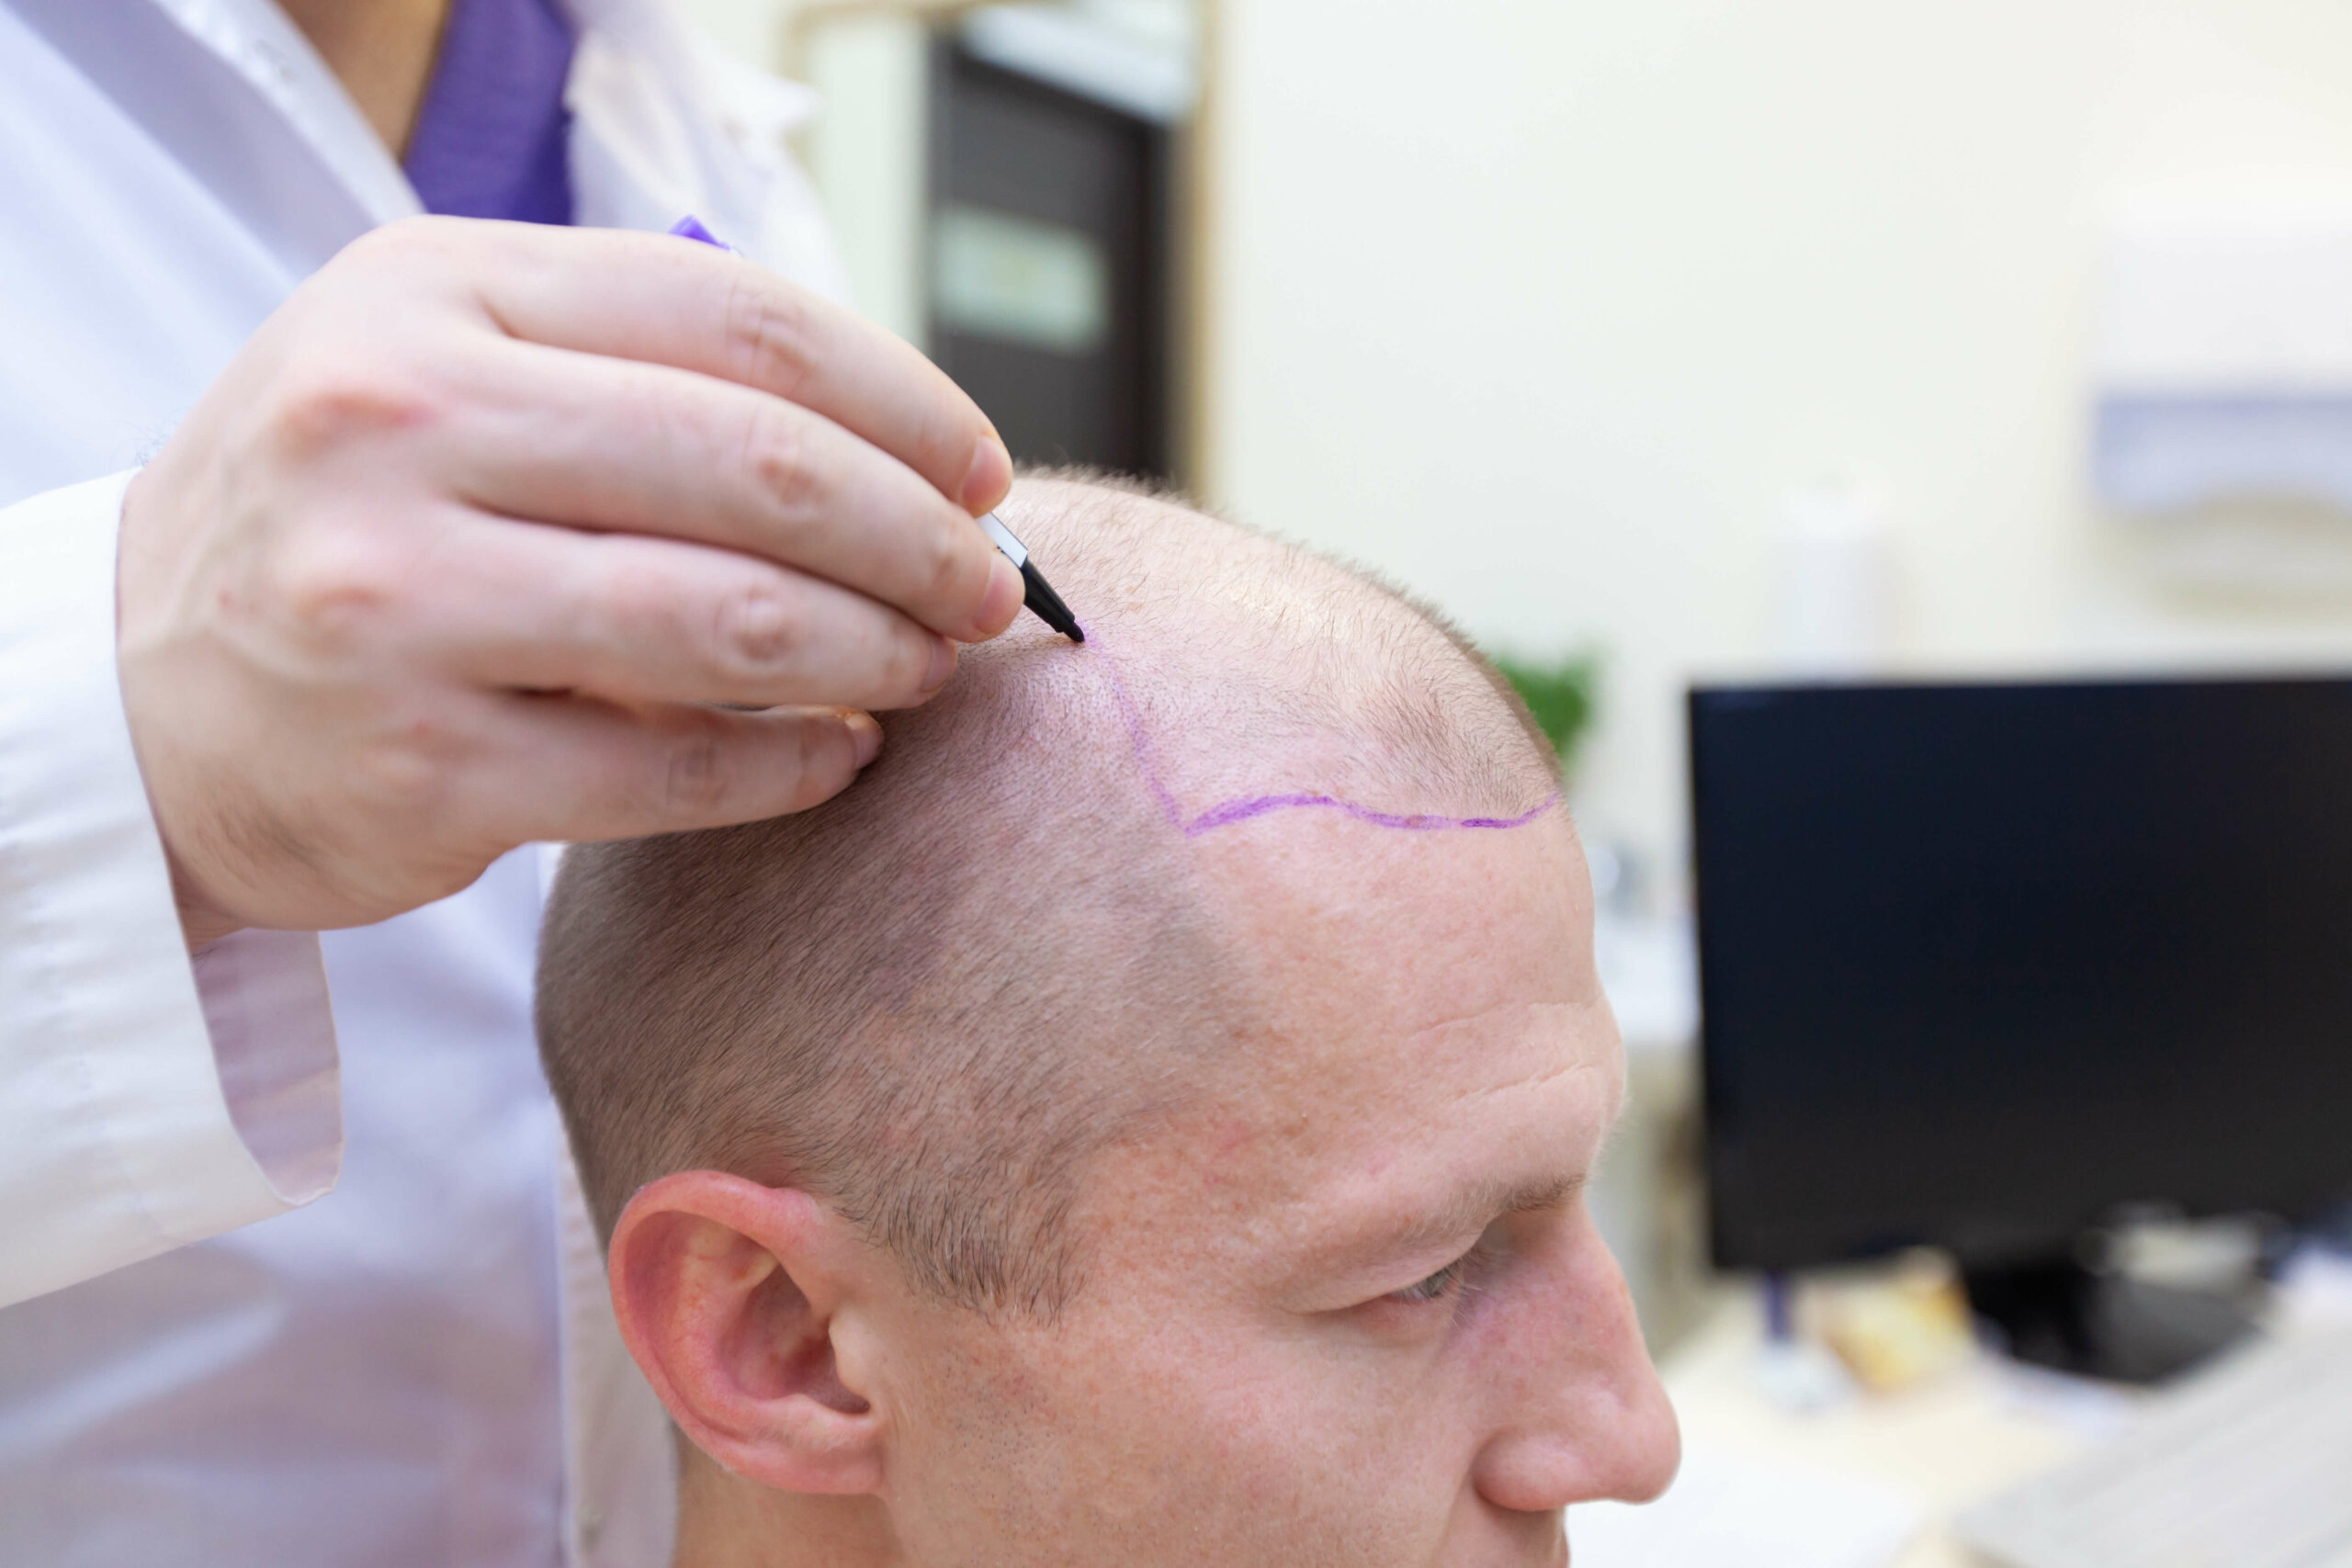 man being prepared for a hair transplantation procedure